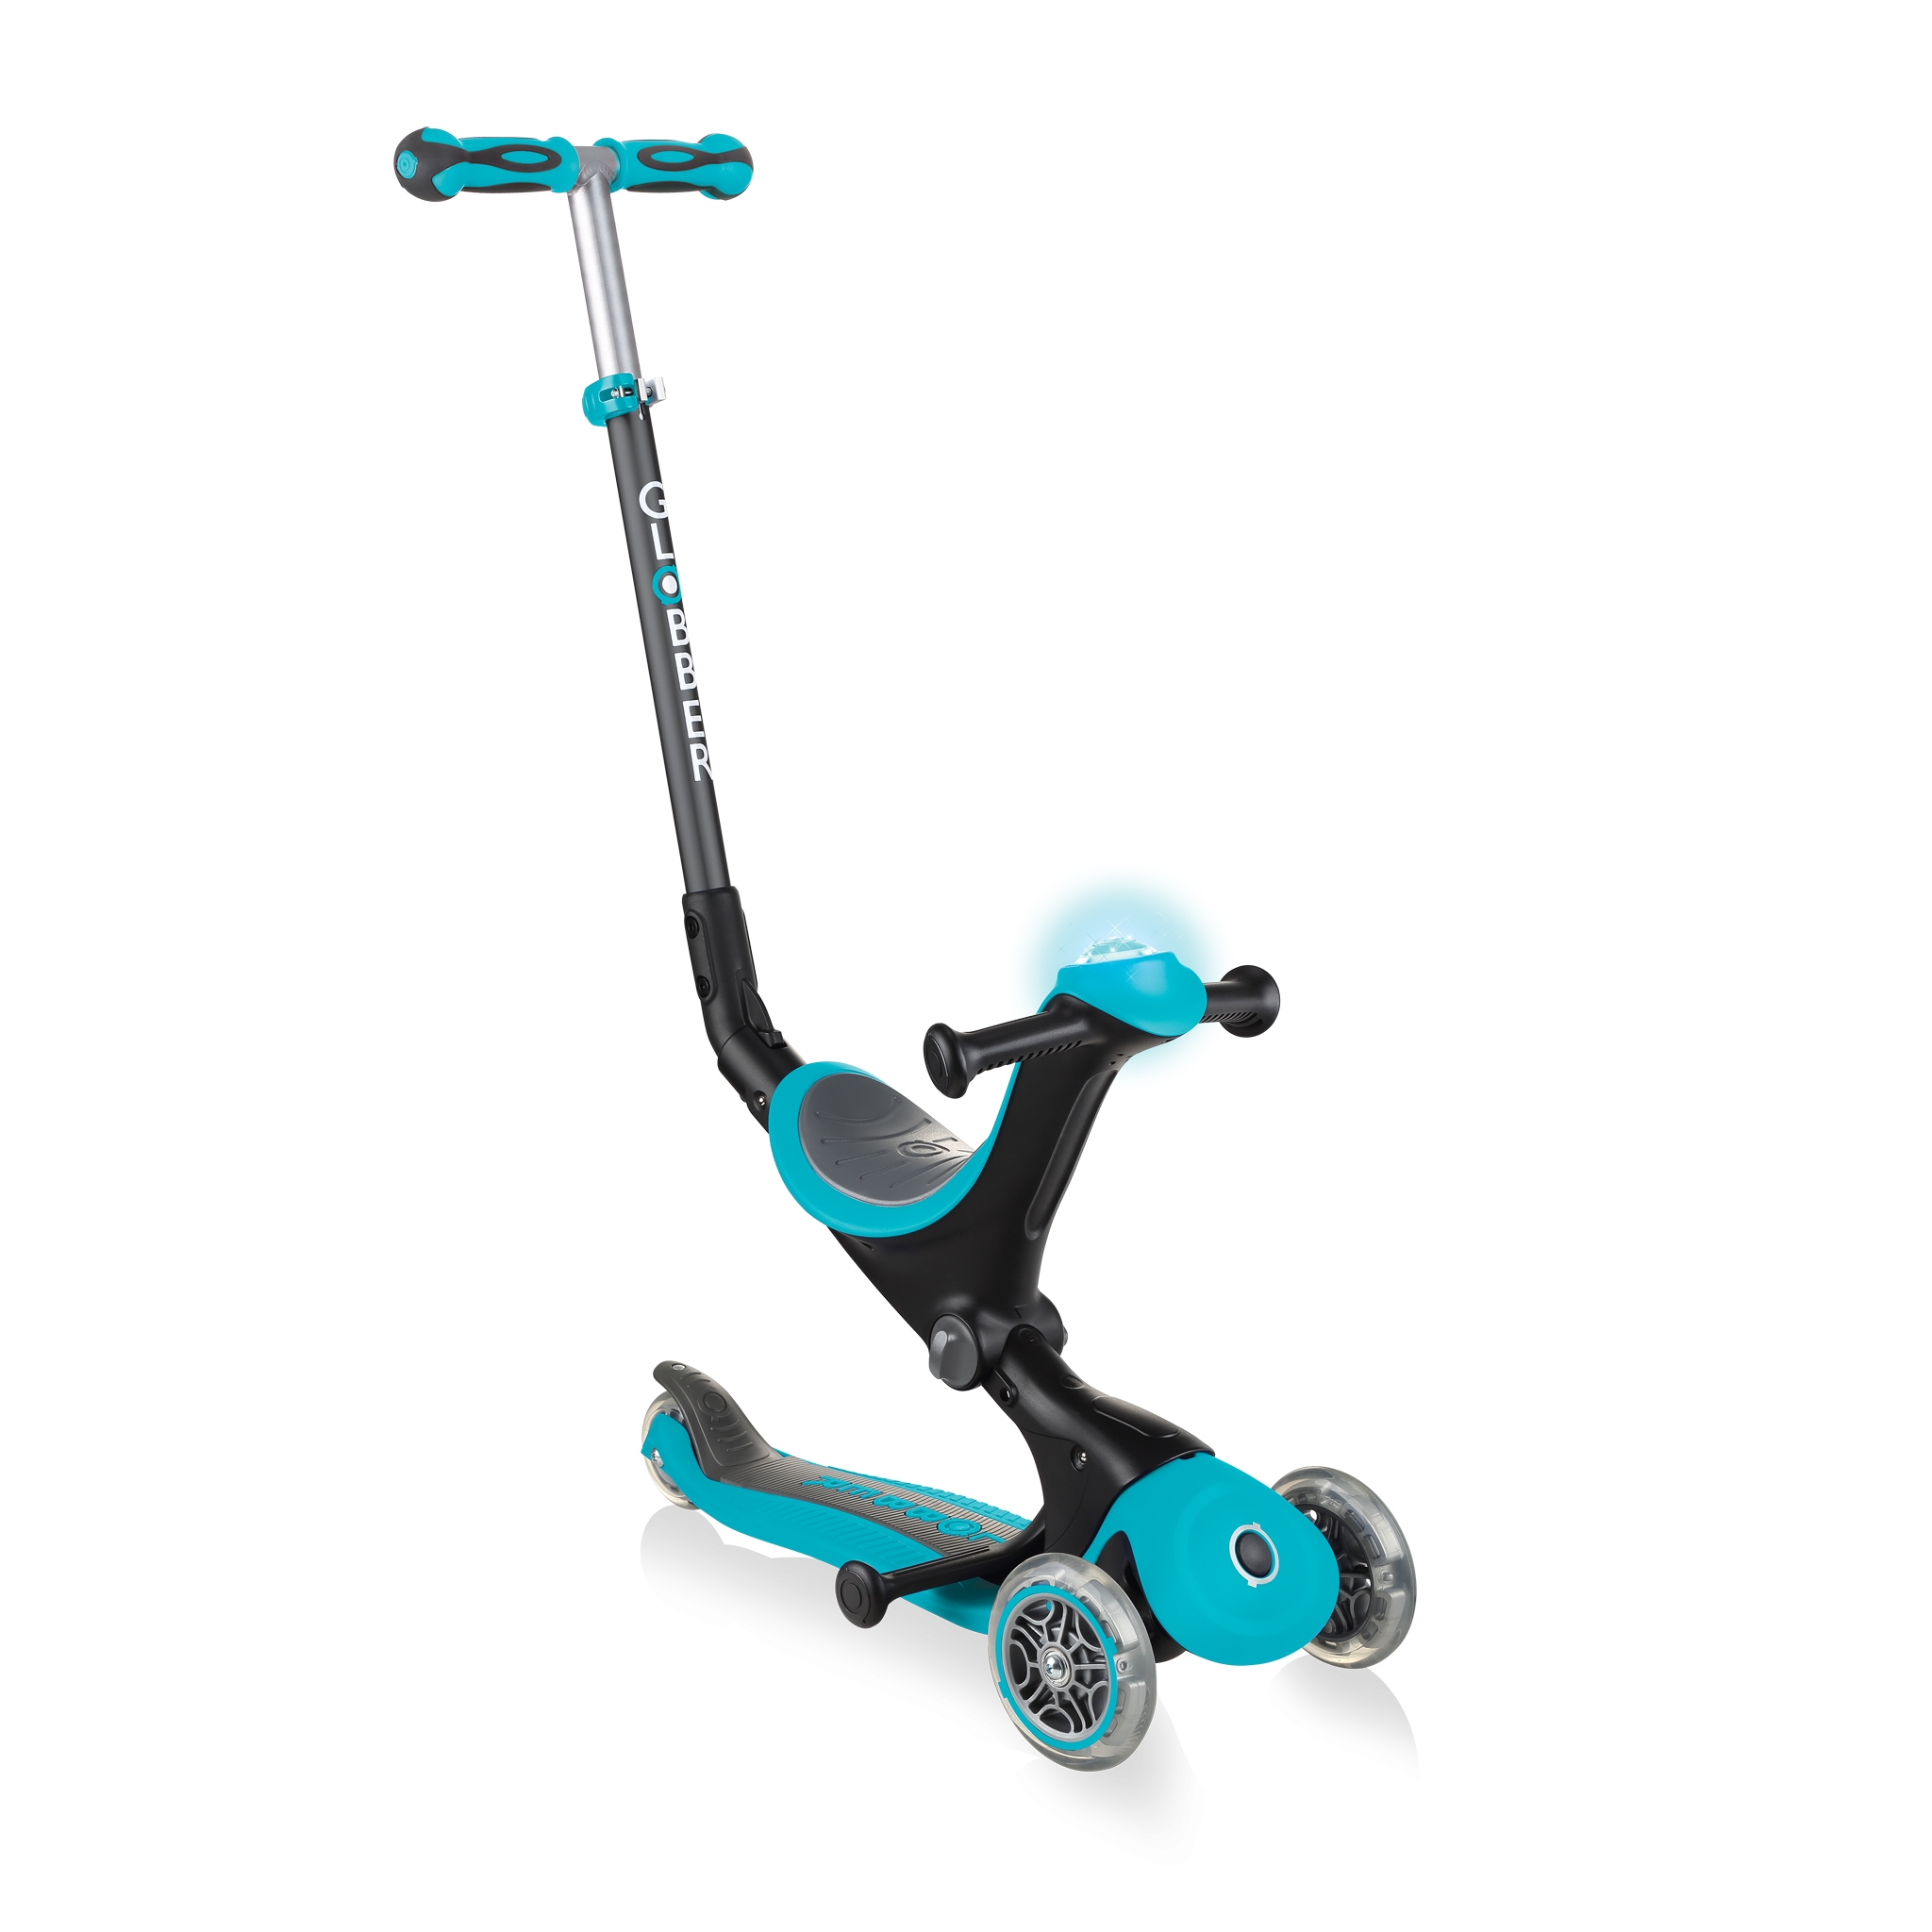 GO-UP-DELUXE-PLAY-ride-on-walking-bike-scooter-with-light-and-sound-module-teal 0